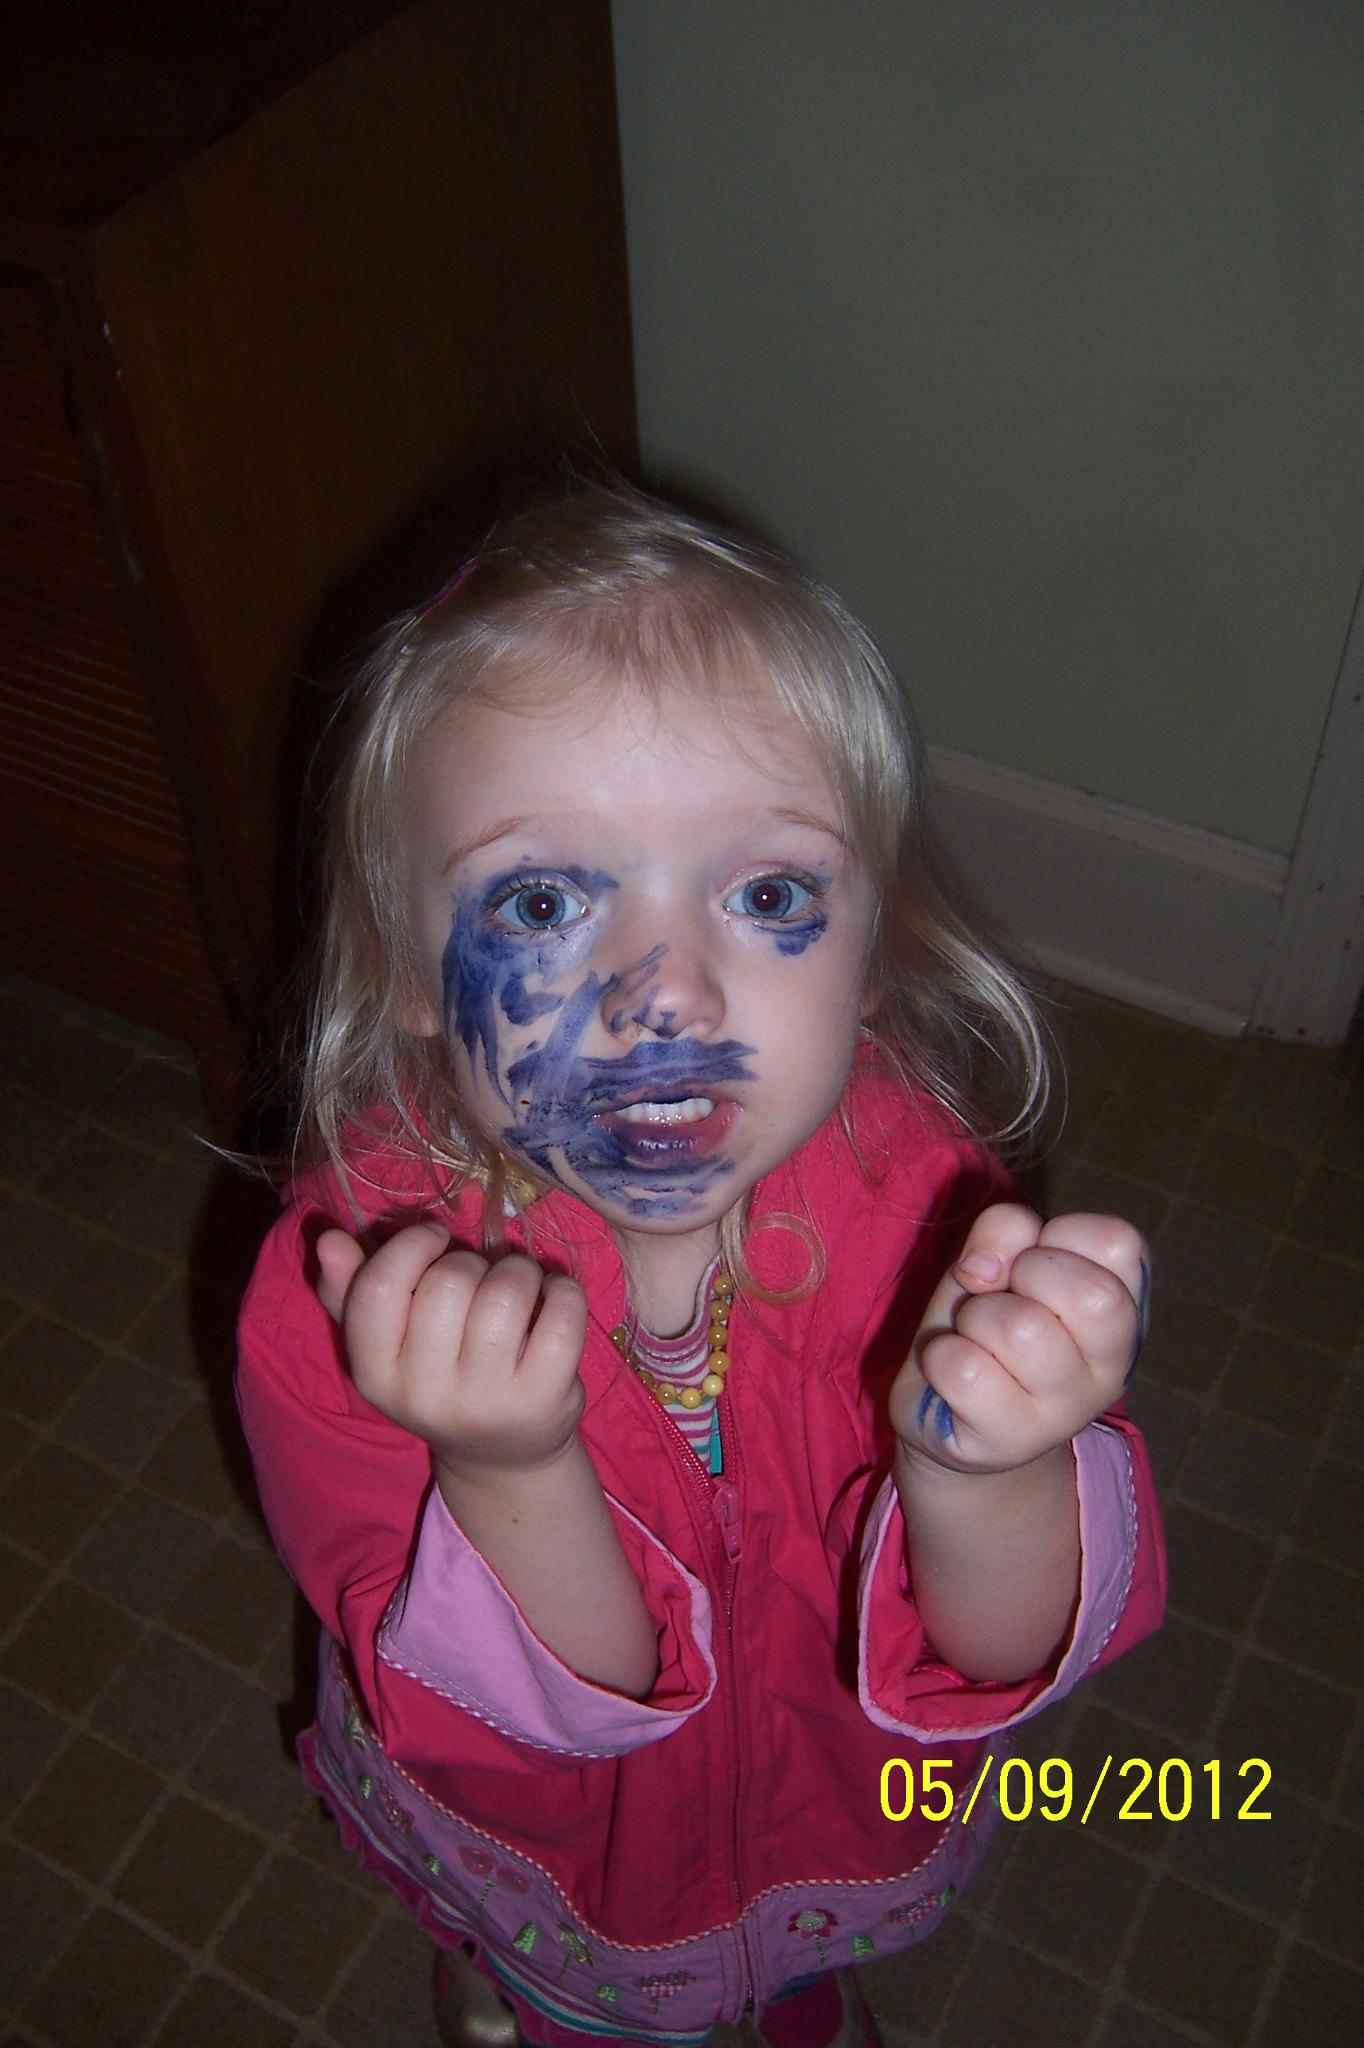 crayola washable marker smeared over face........